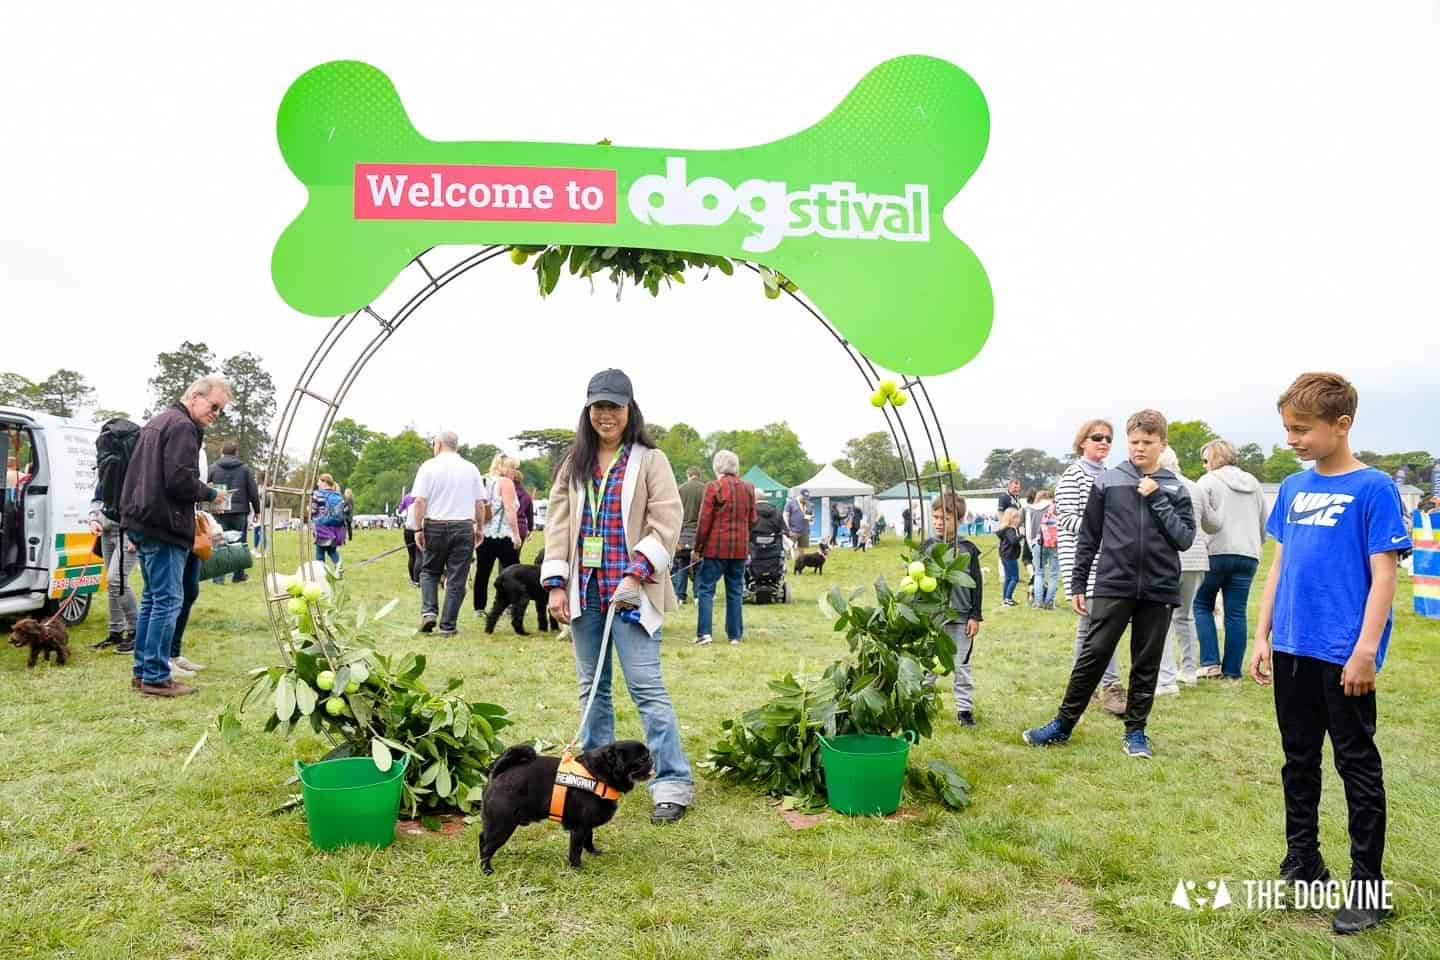 Dogstival New Forest Dog Festival Is A Barking Success 11